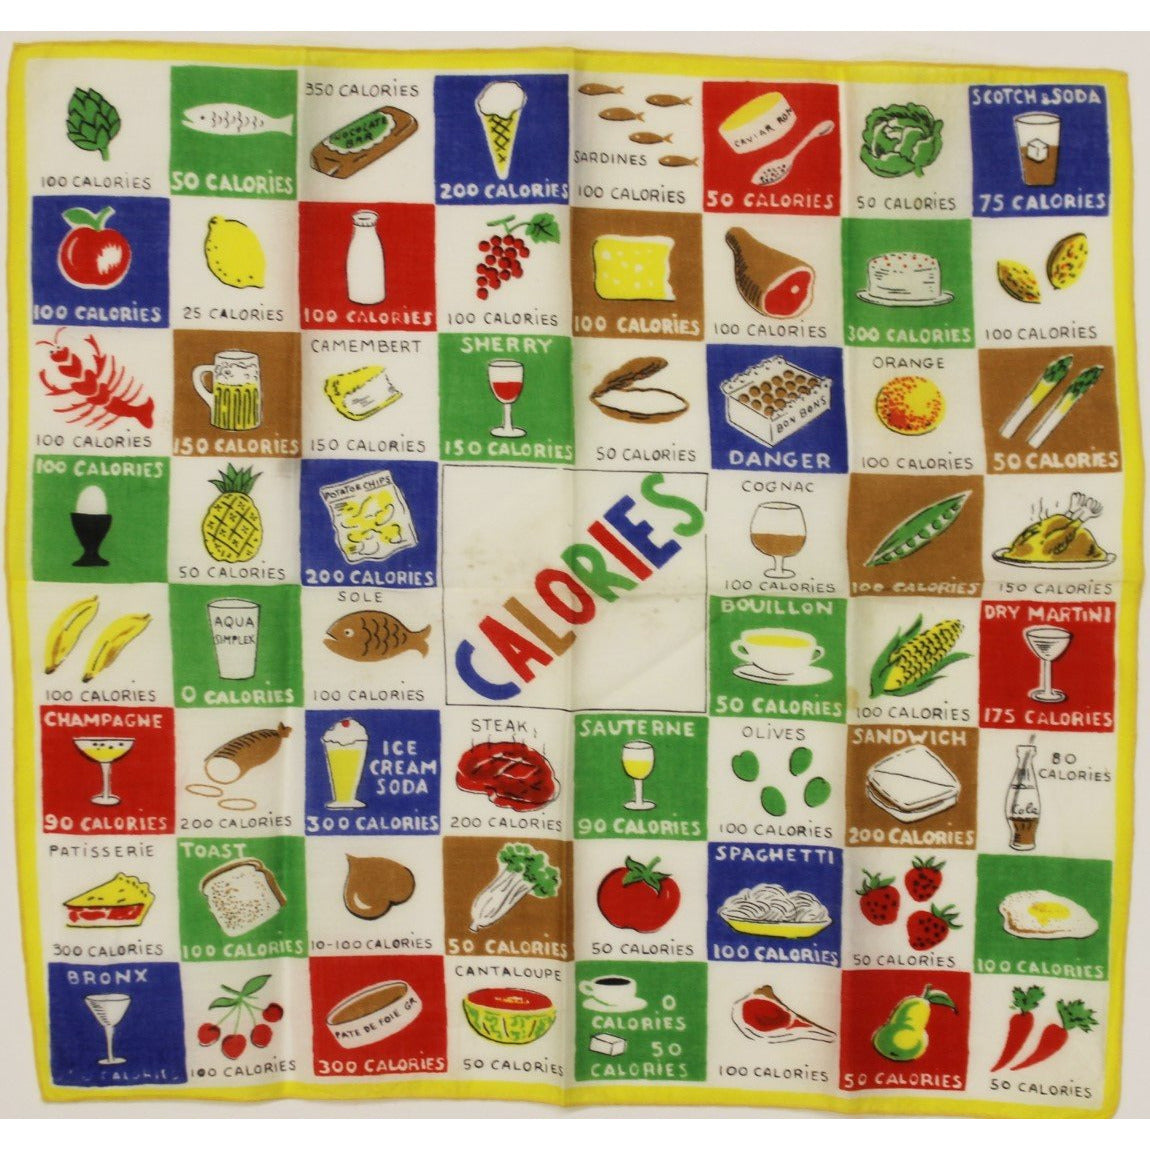 "Calories 60 Food Types Cotton 13 Sq"" Scarf"